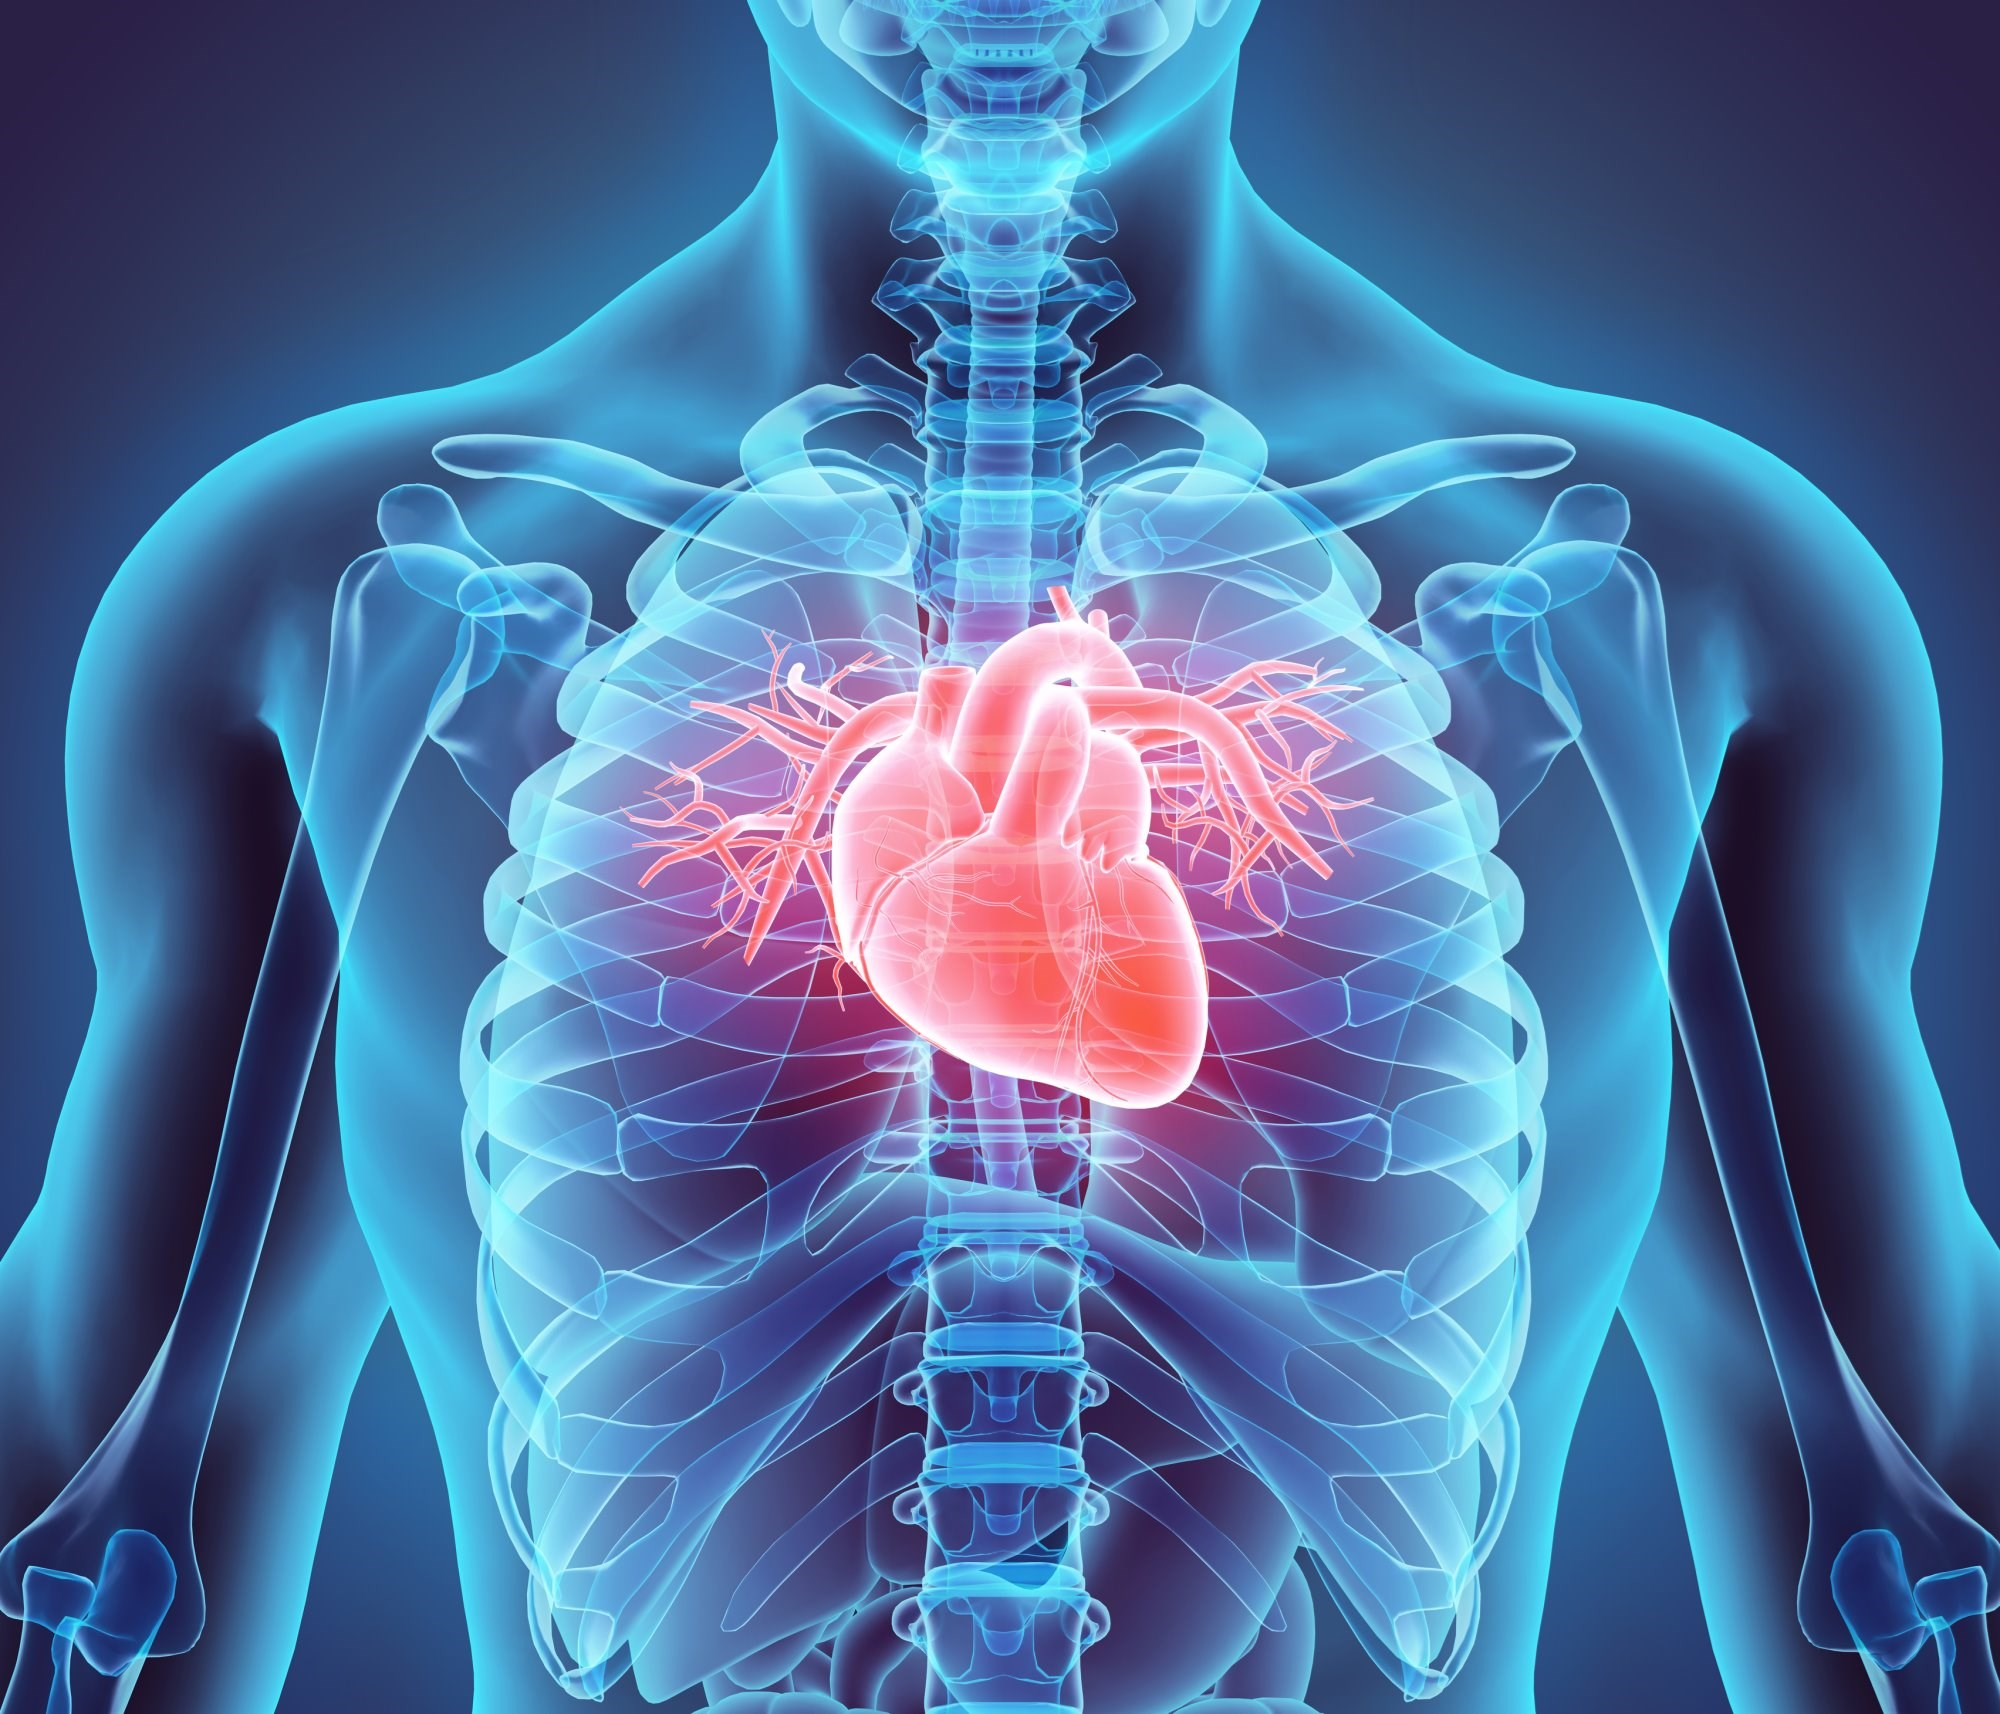 Skin sodium content related more strongly to left ventricular mass than treated blood pressure.